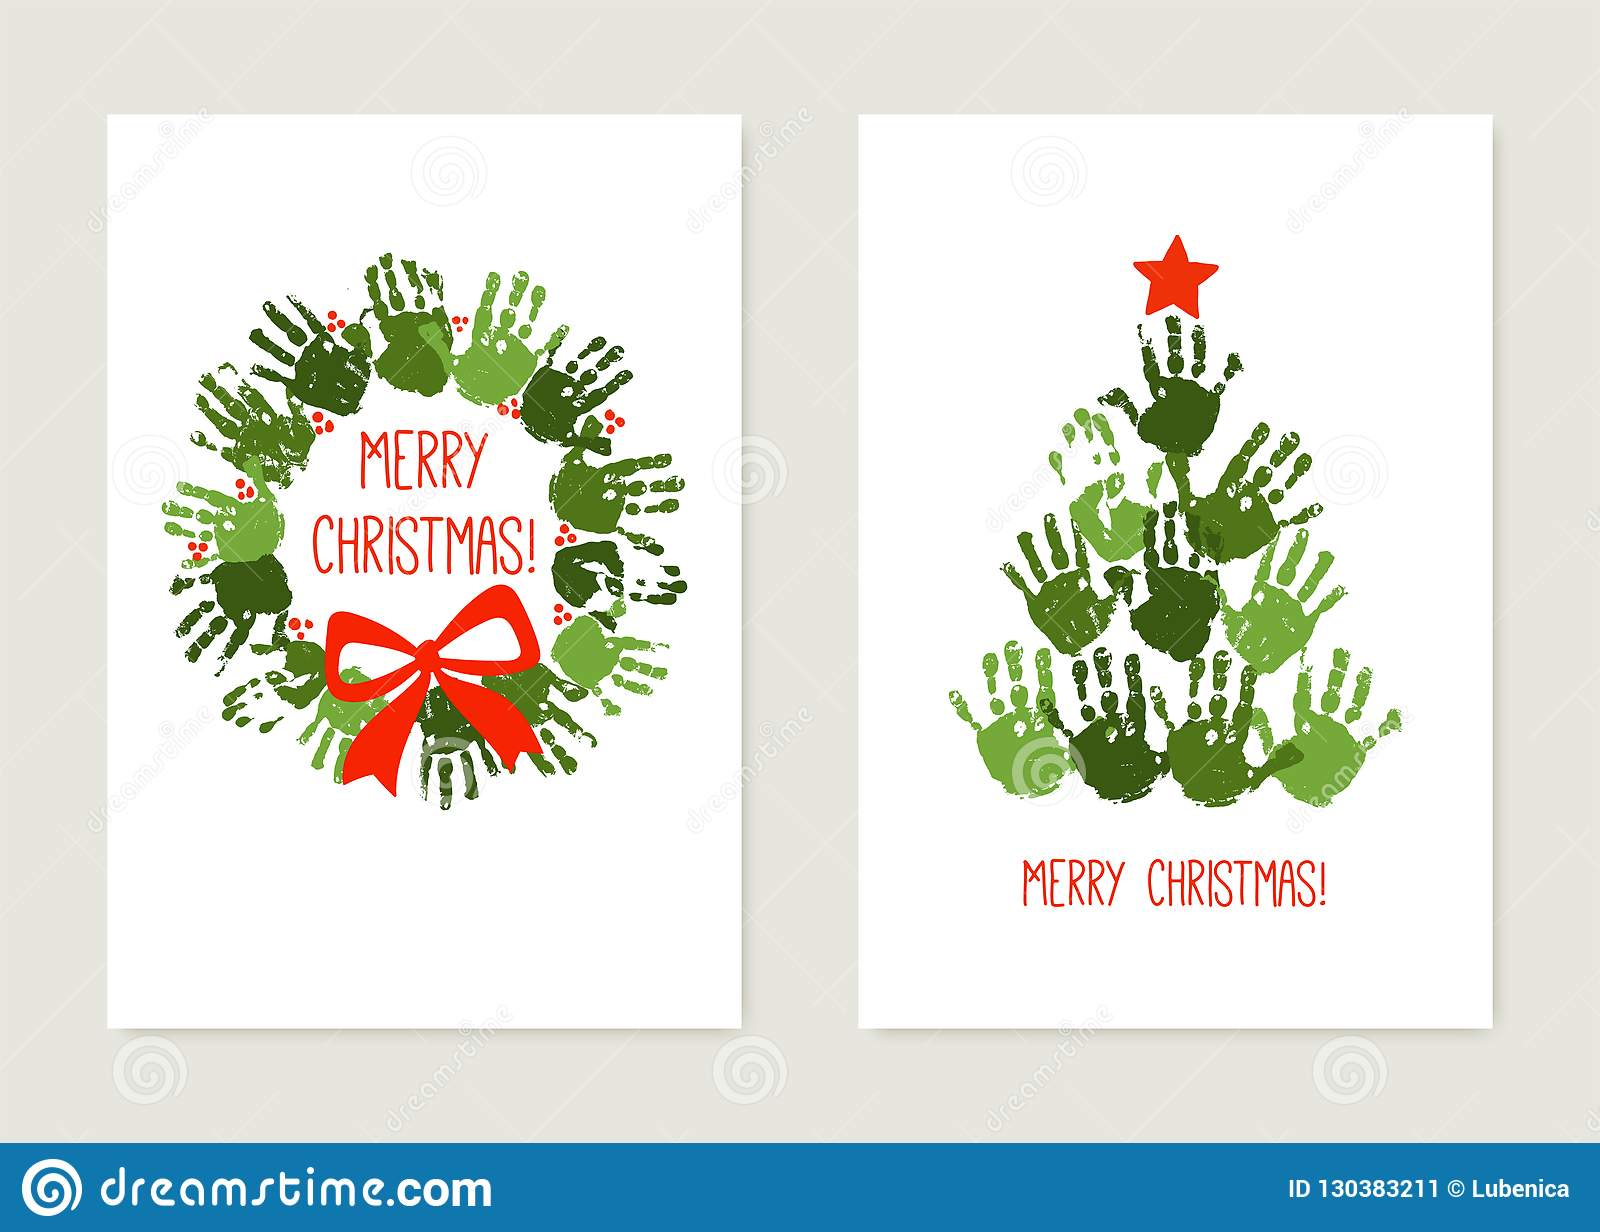 handprint christmas tree with red star handprint christmas wreath with red bow christmas hand print card set stock vector illustration of isolated friendship 130383211 https www dreamstime com handprint christmas tree red star wreath bow hand print card set watercolor acryli acrylic children art vector illustration image130383211